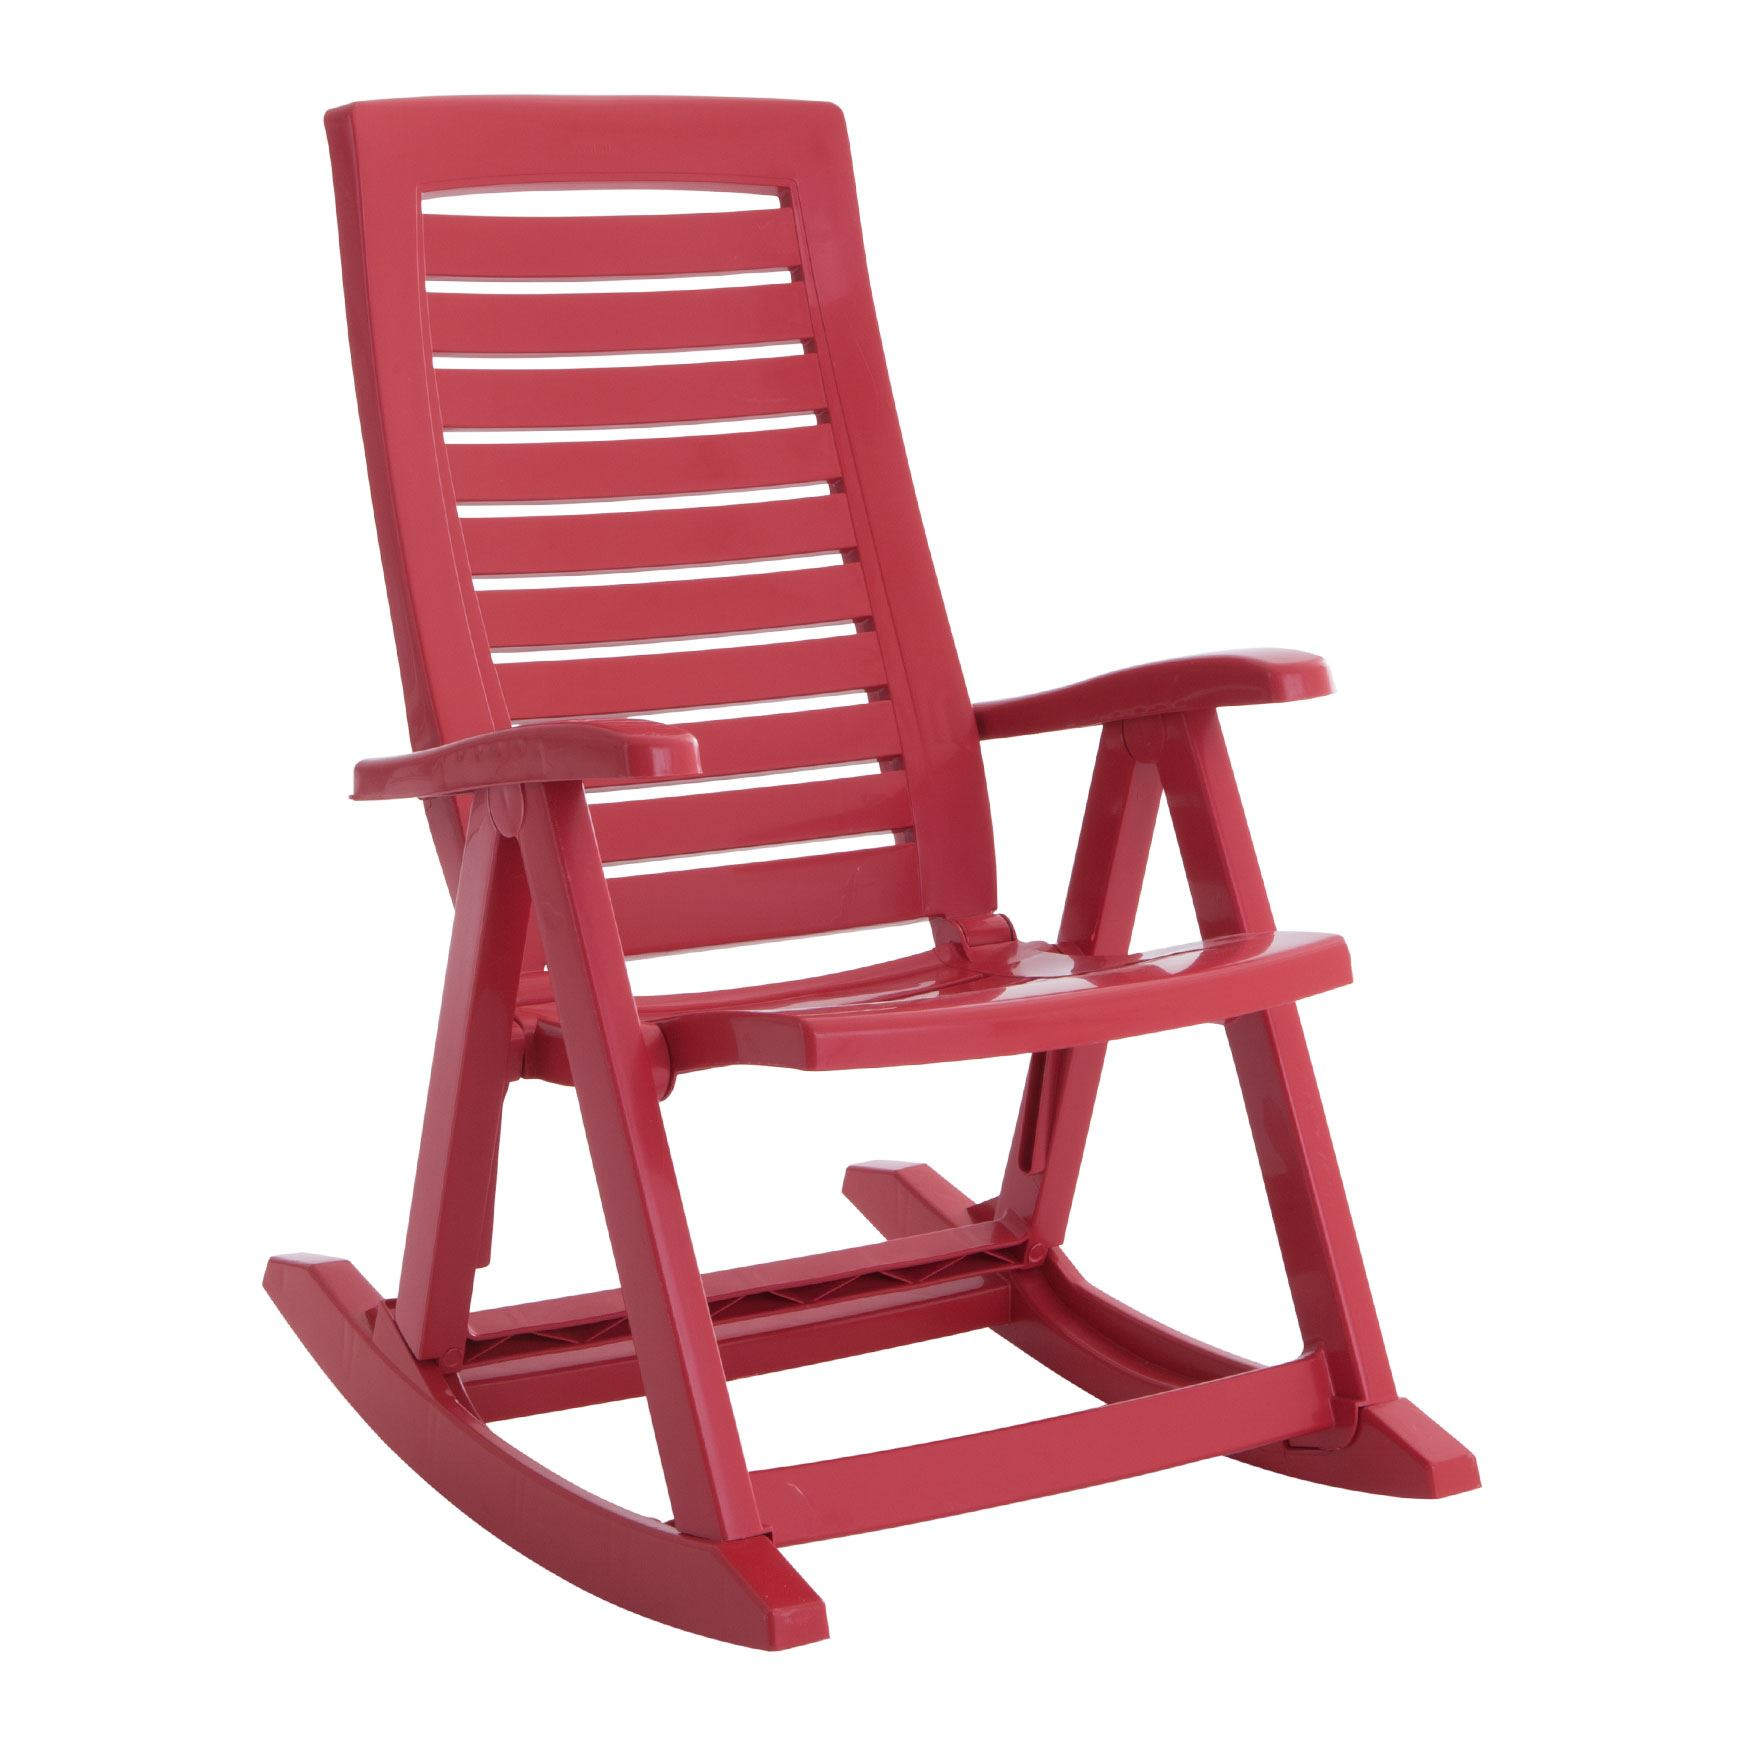 Home Plus Furniture: Foldable Rocking Chair